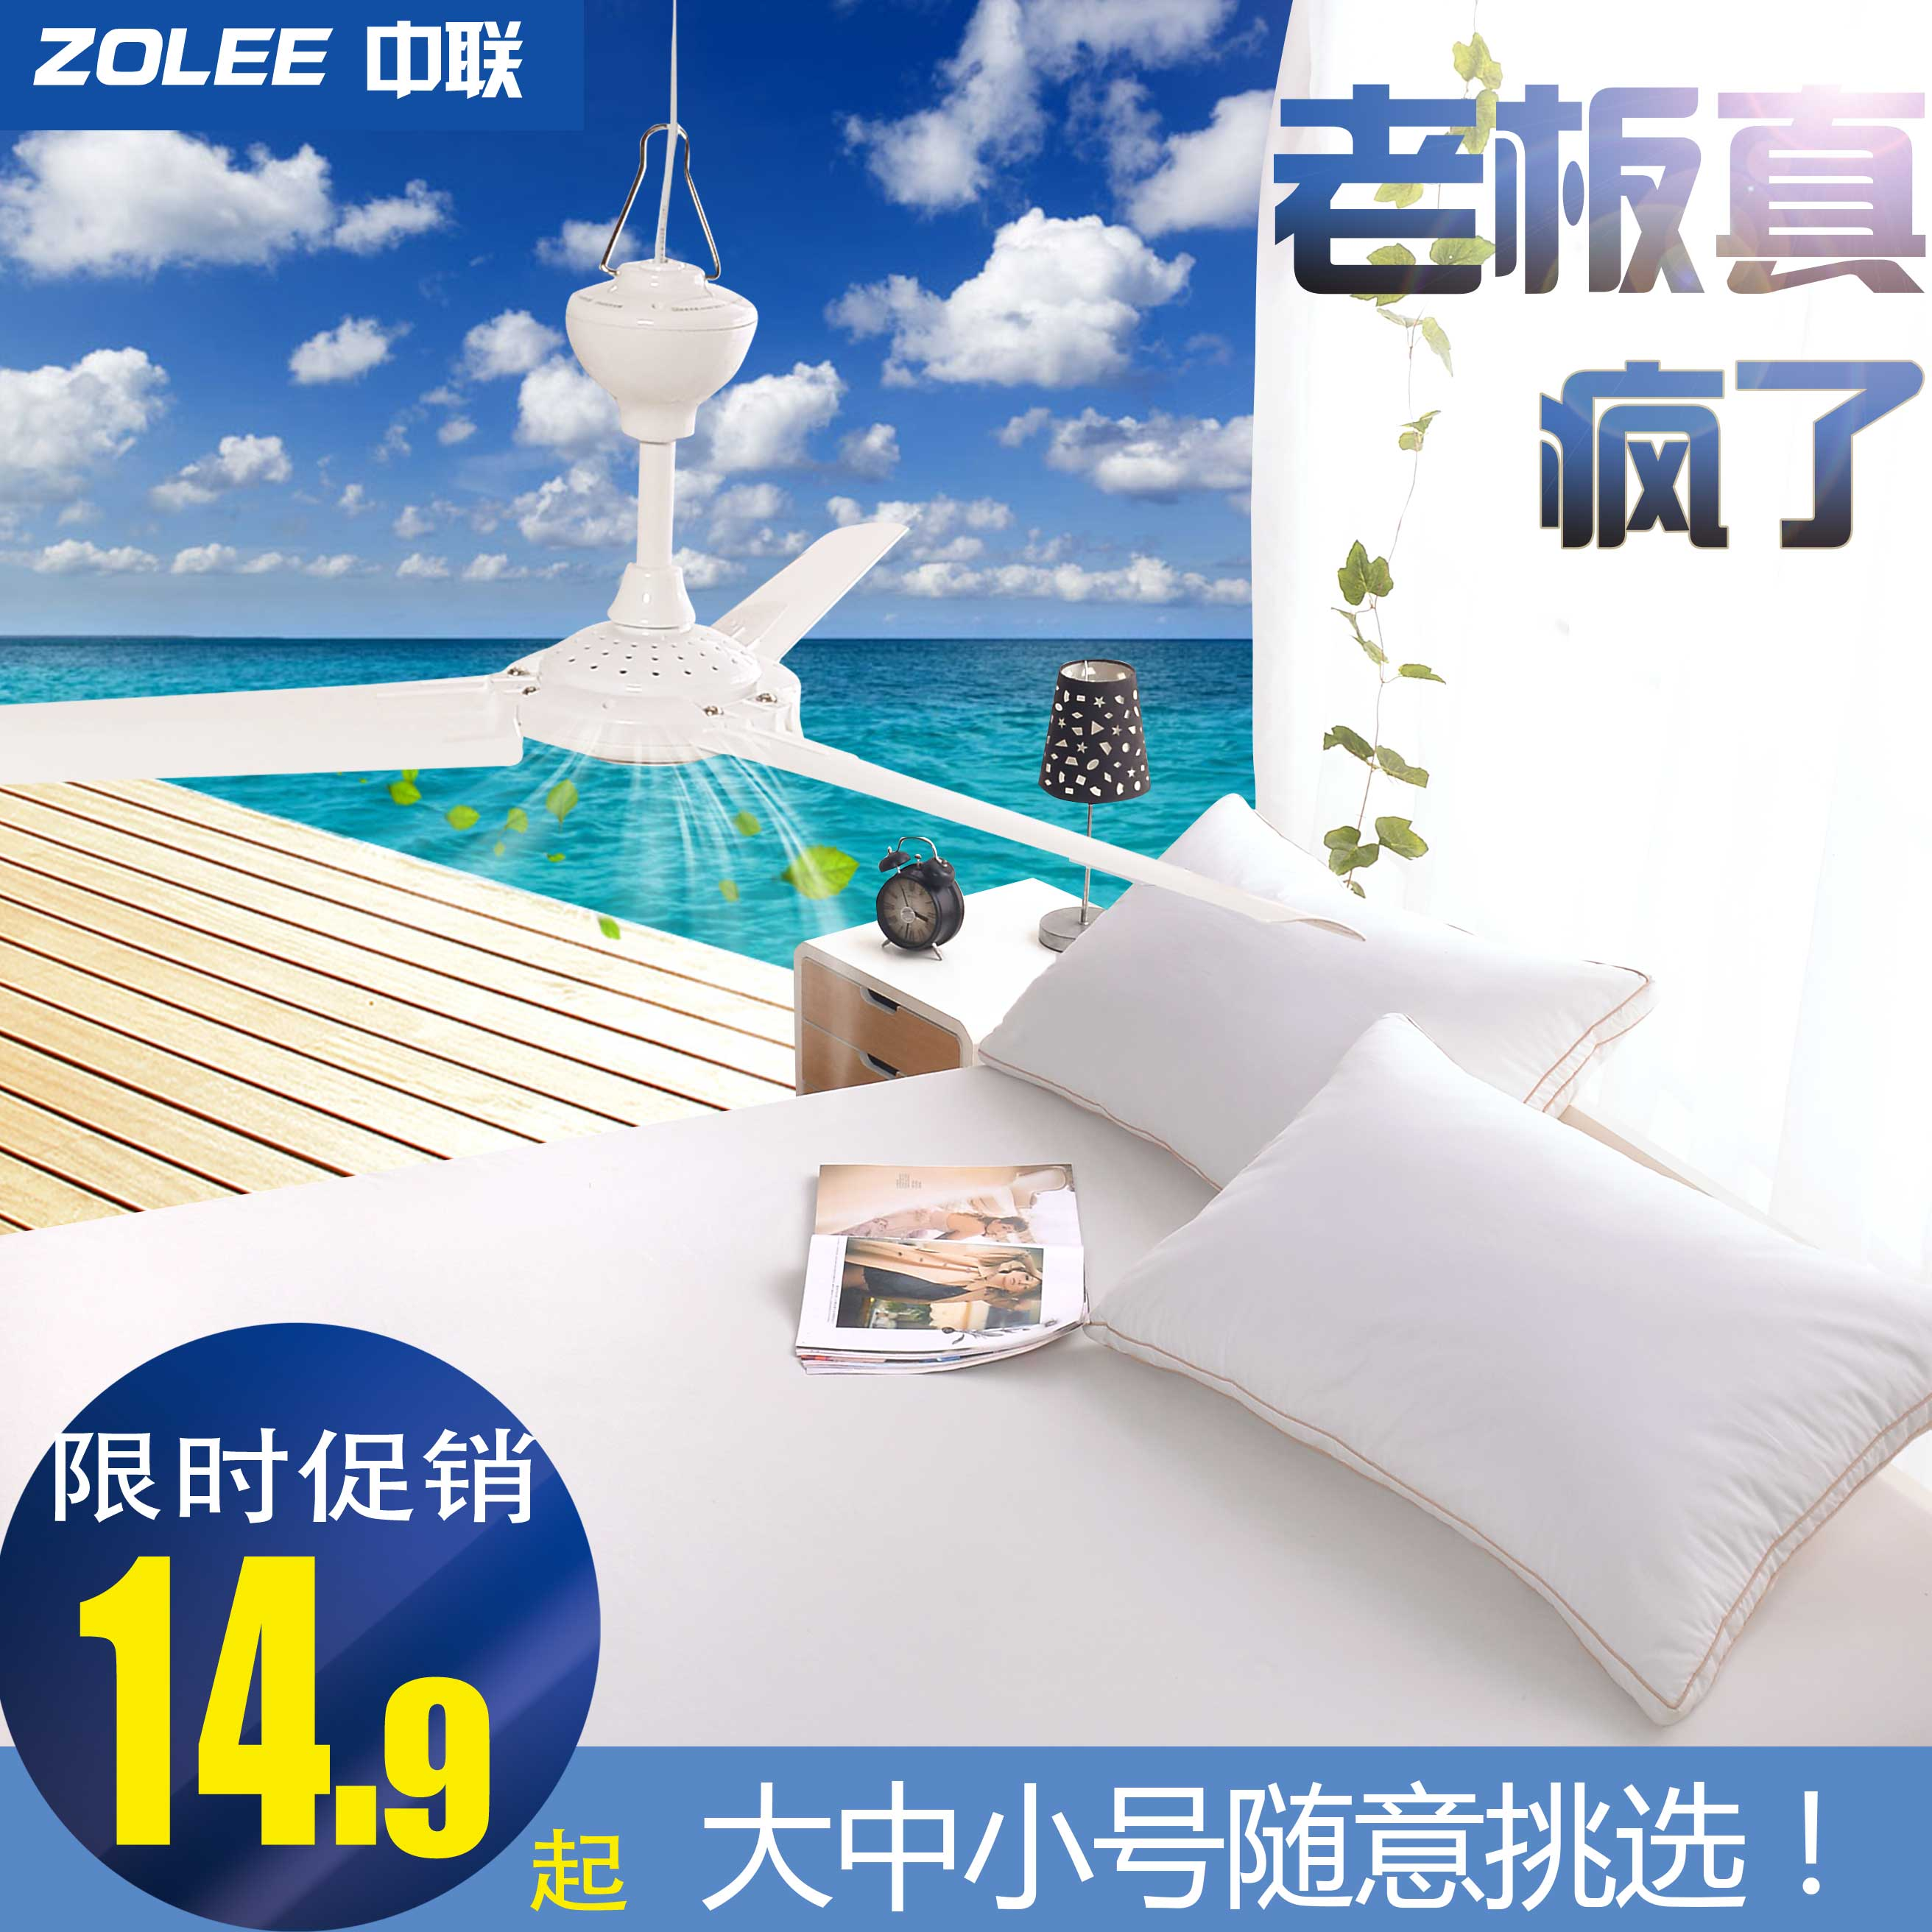 Zhonglian small ceiling fan bed wind silent breeze student dormitory mosquito net ceiling fan home small remote control fan